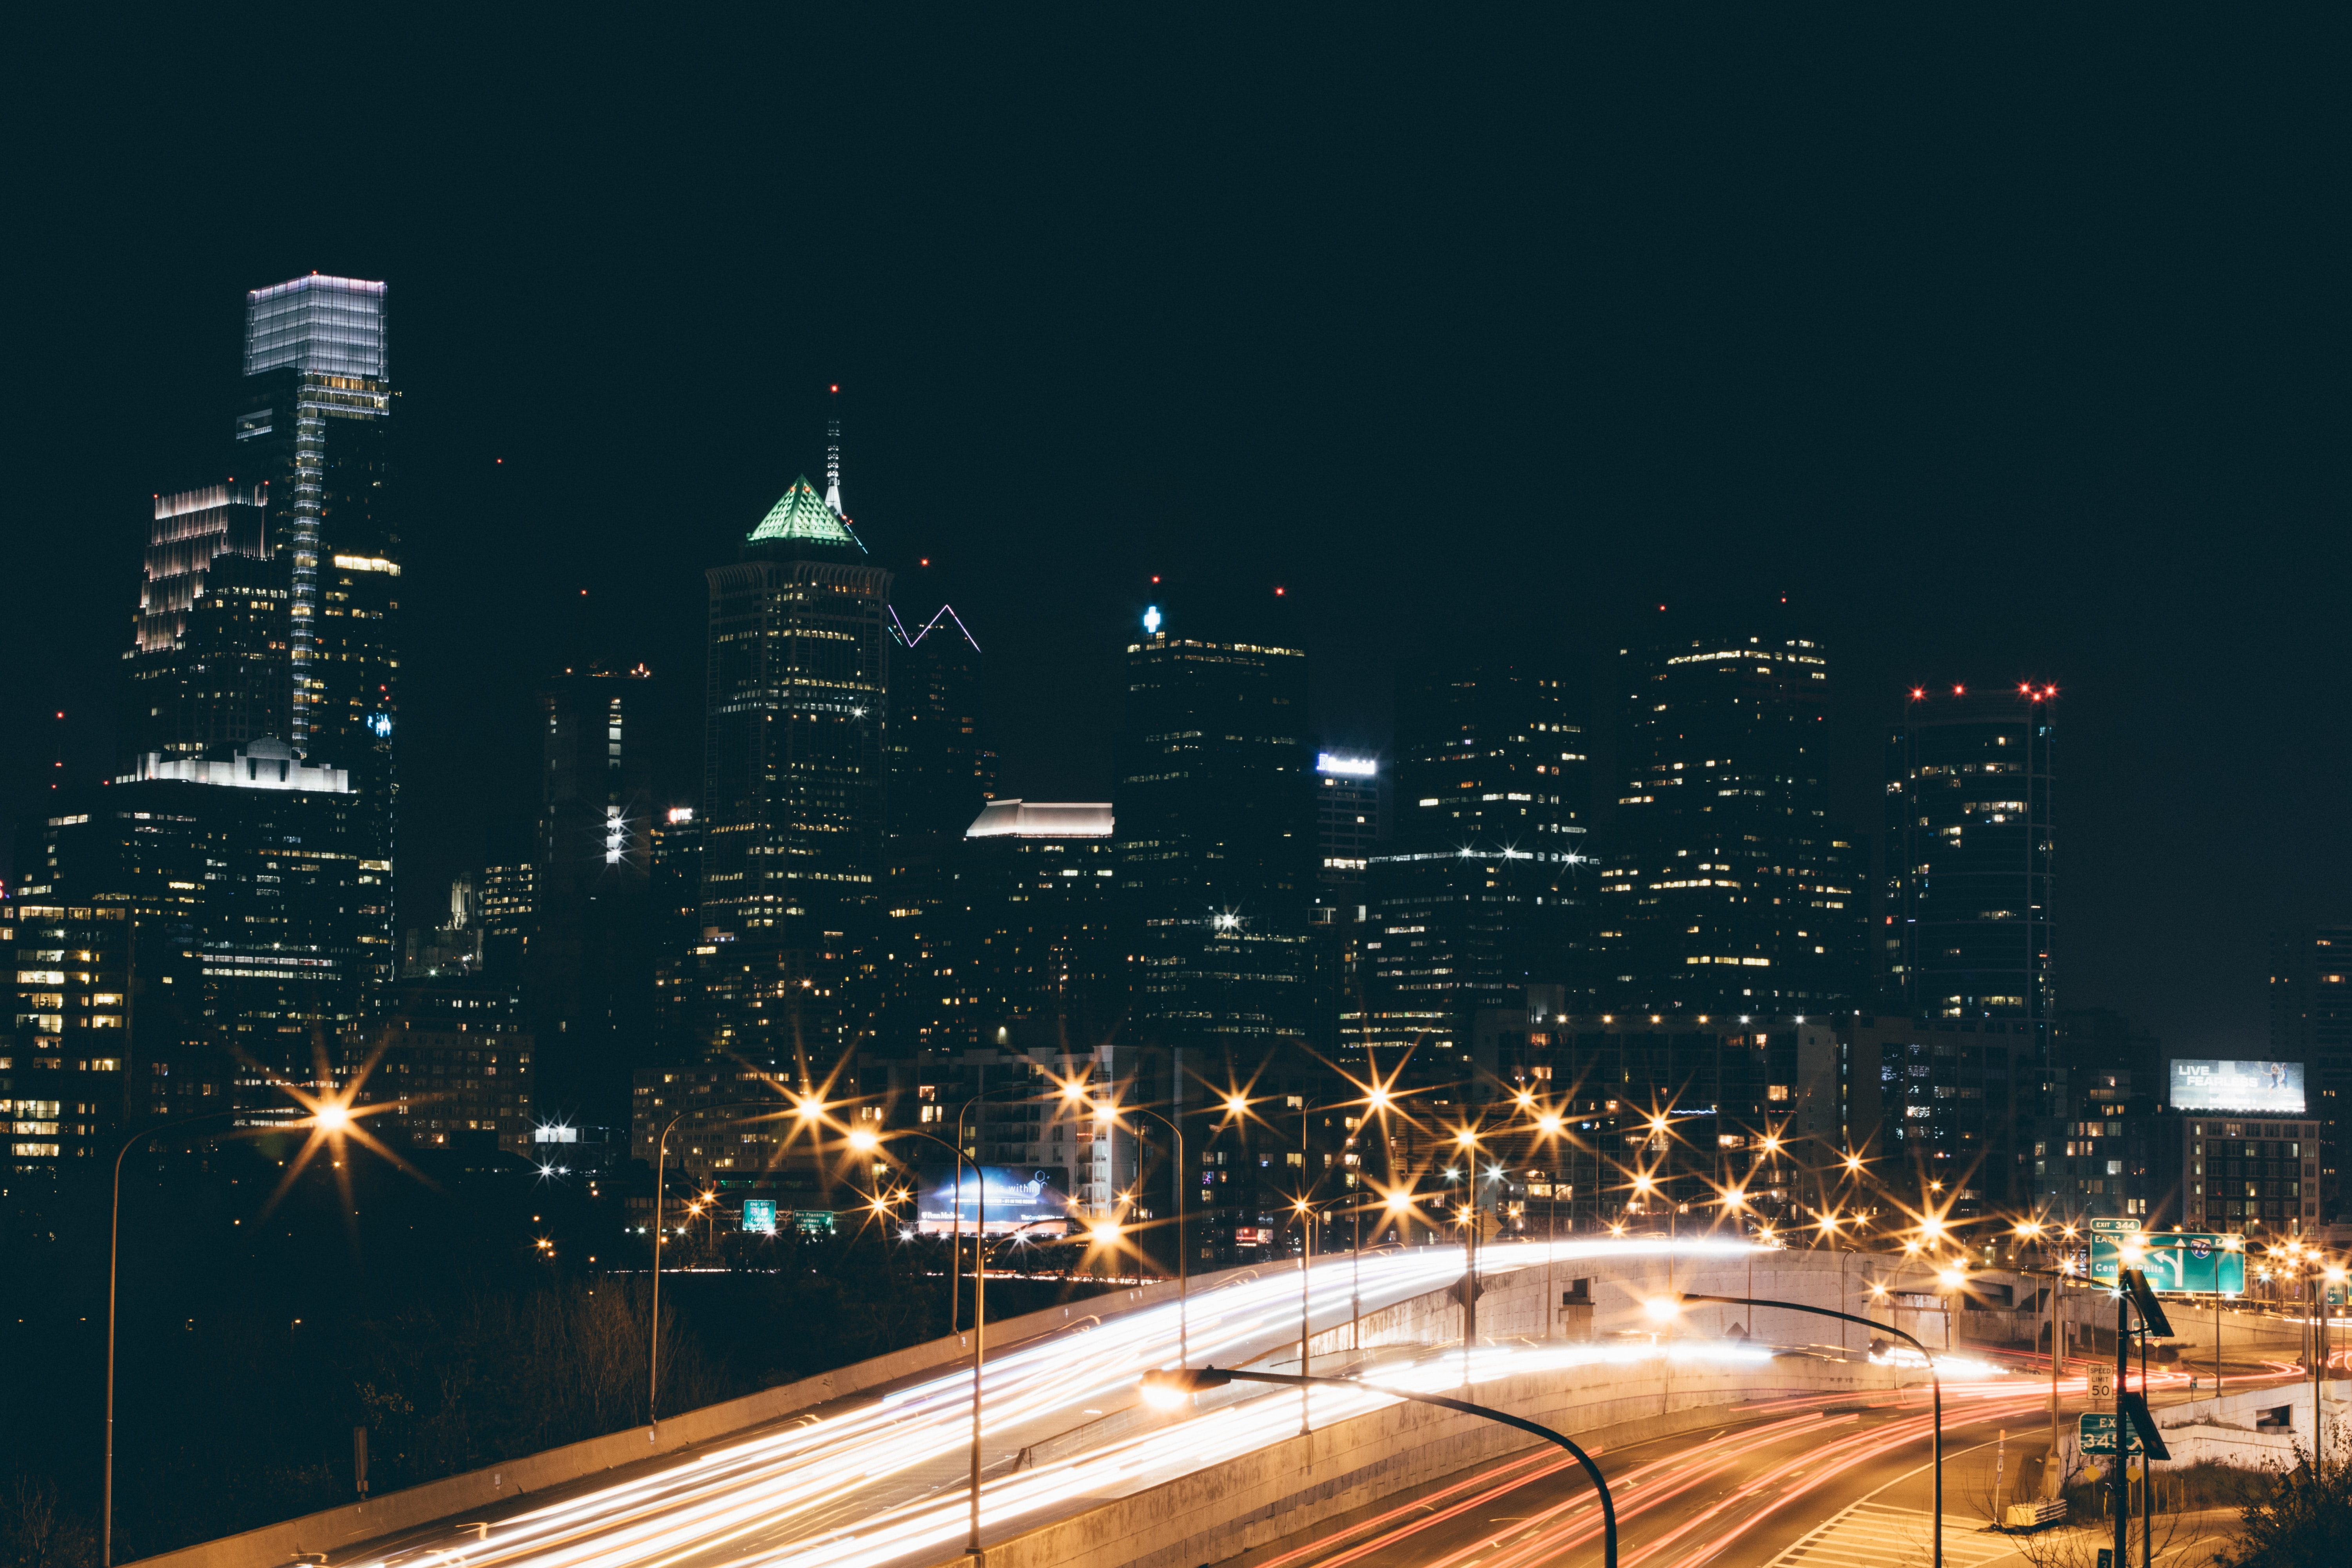 A long-exposure shot of a freeway in Philadelphia with light trails on the road and highrises at the back